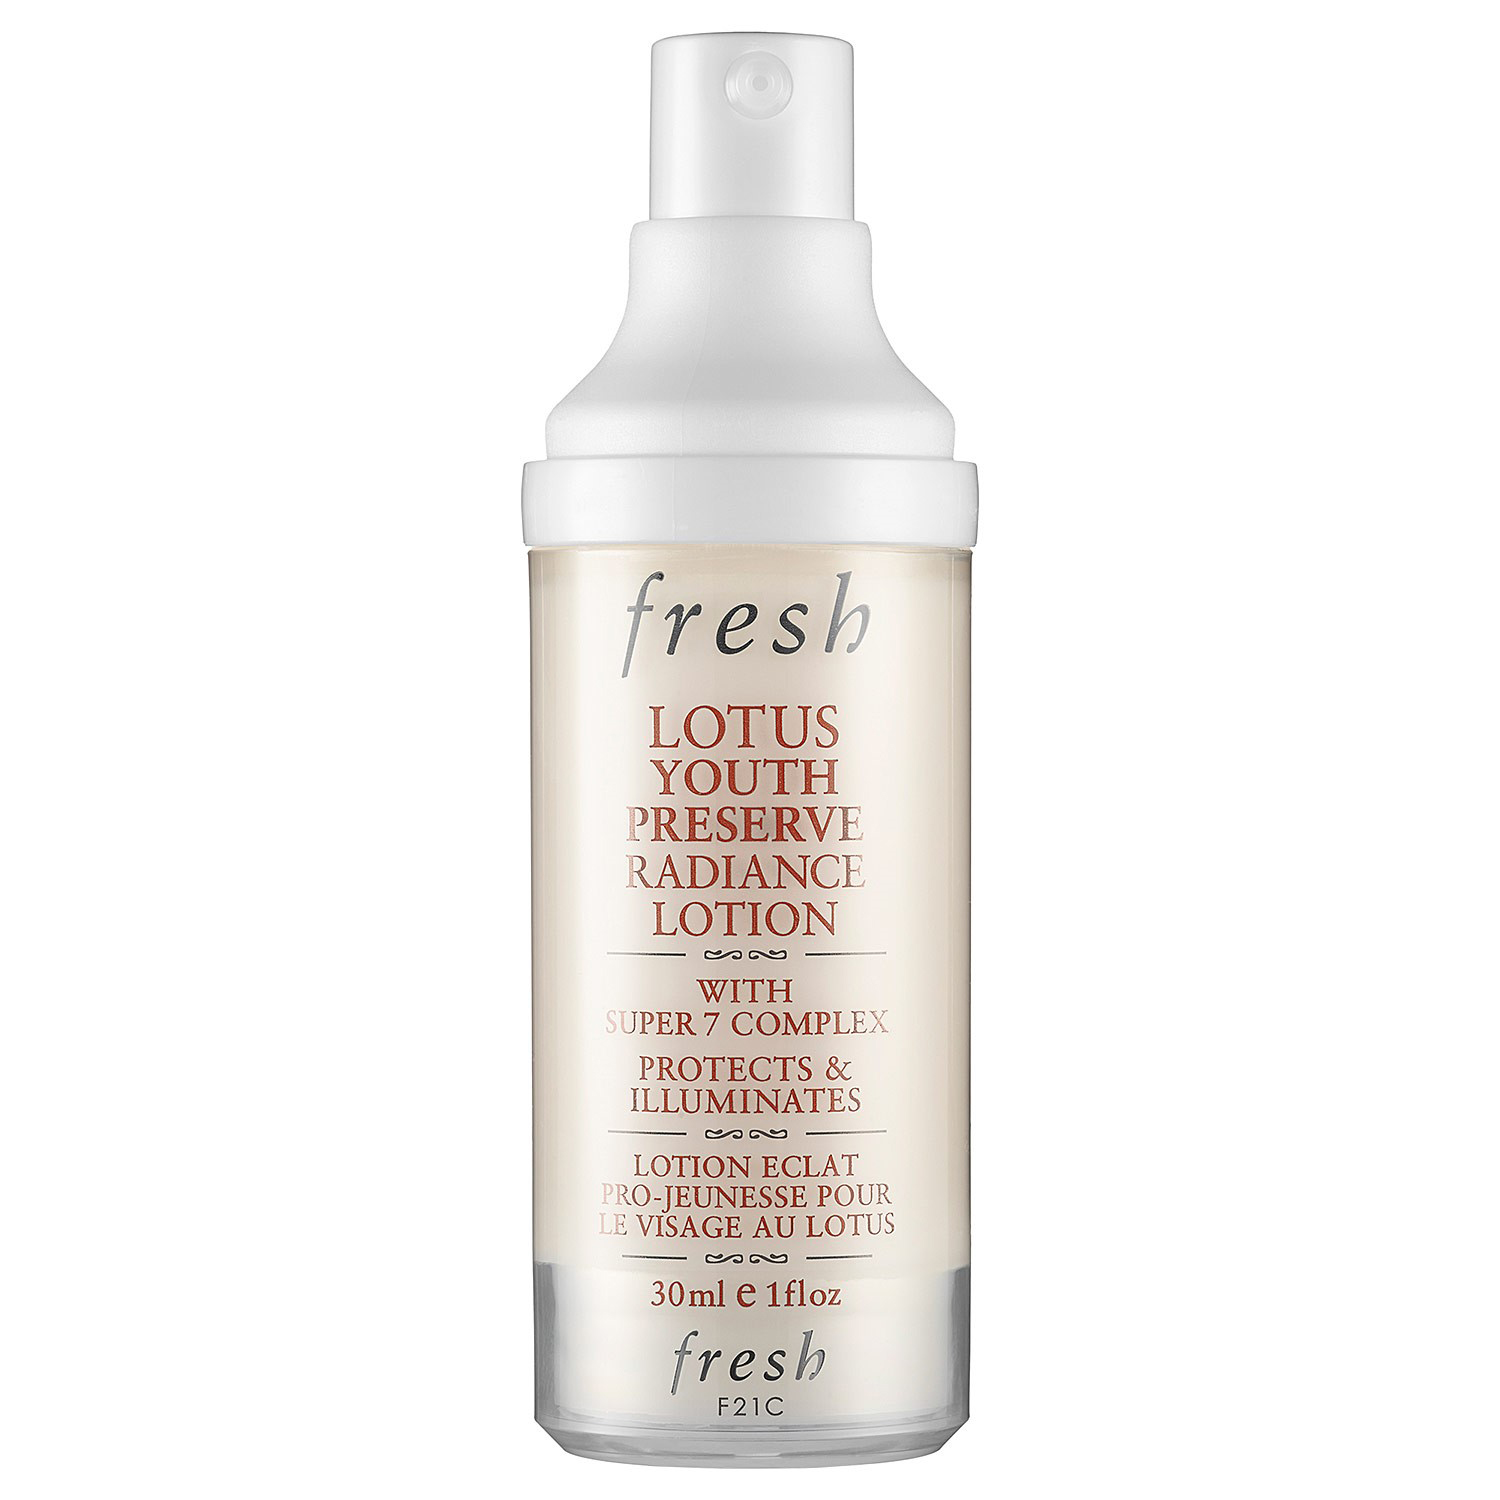 Radiance Youth Lotion Lotus Preserve